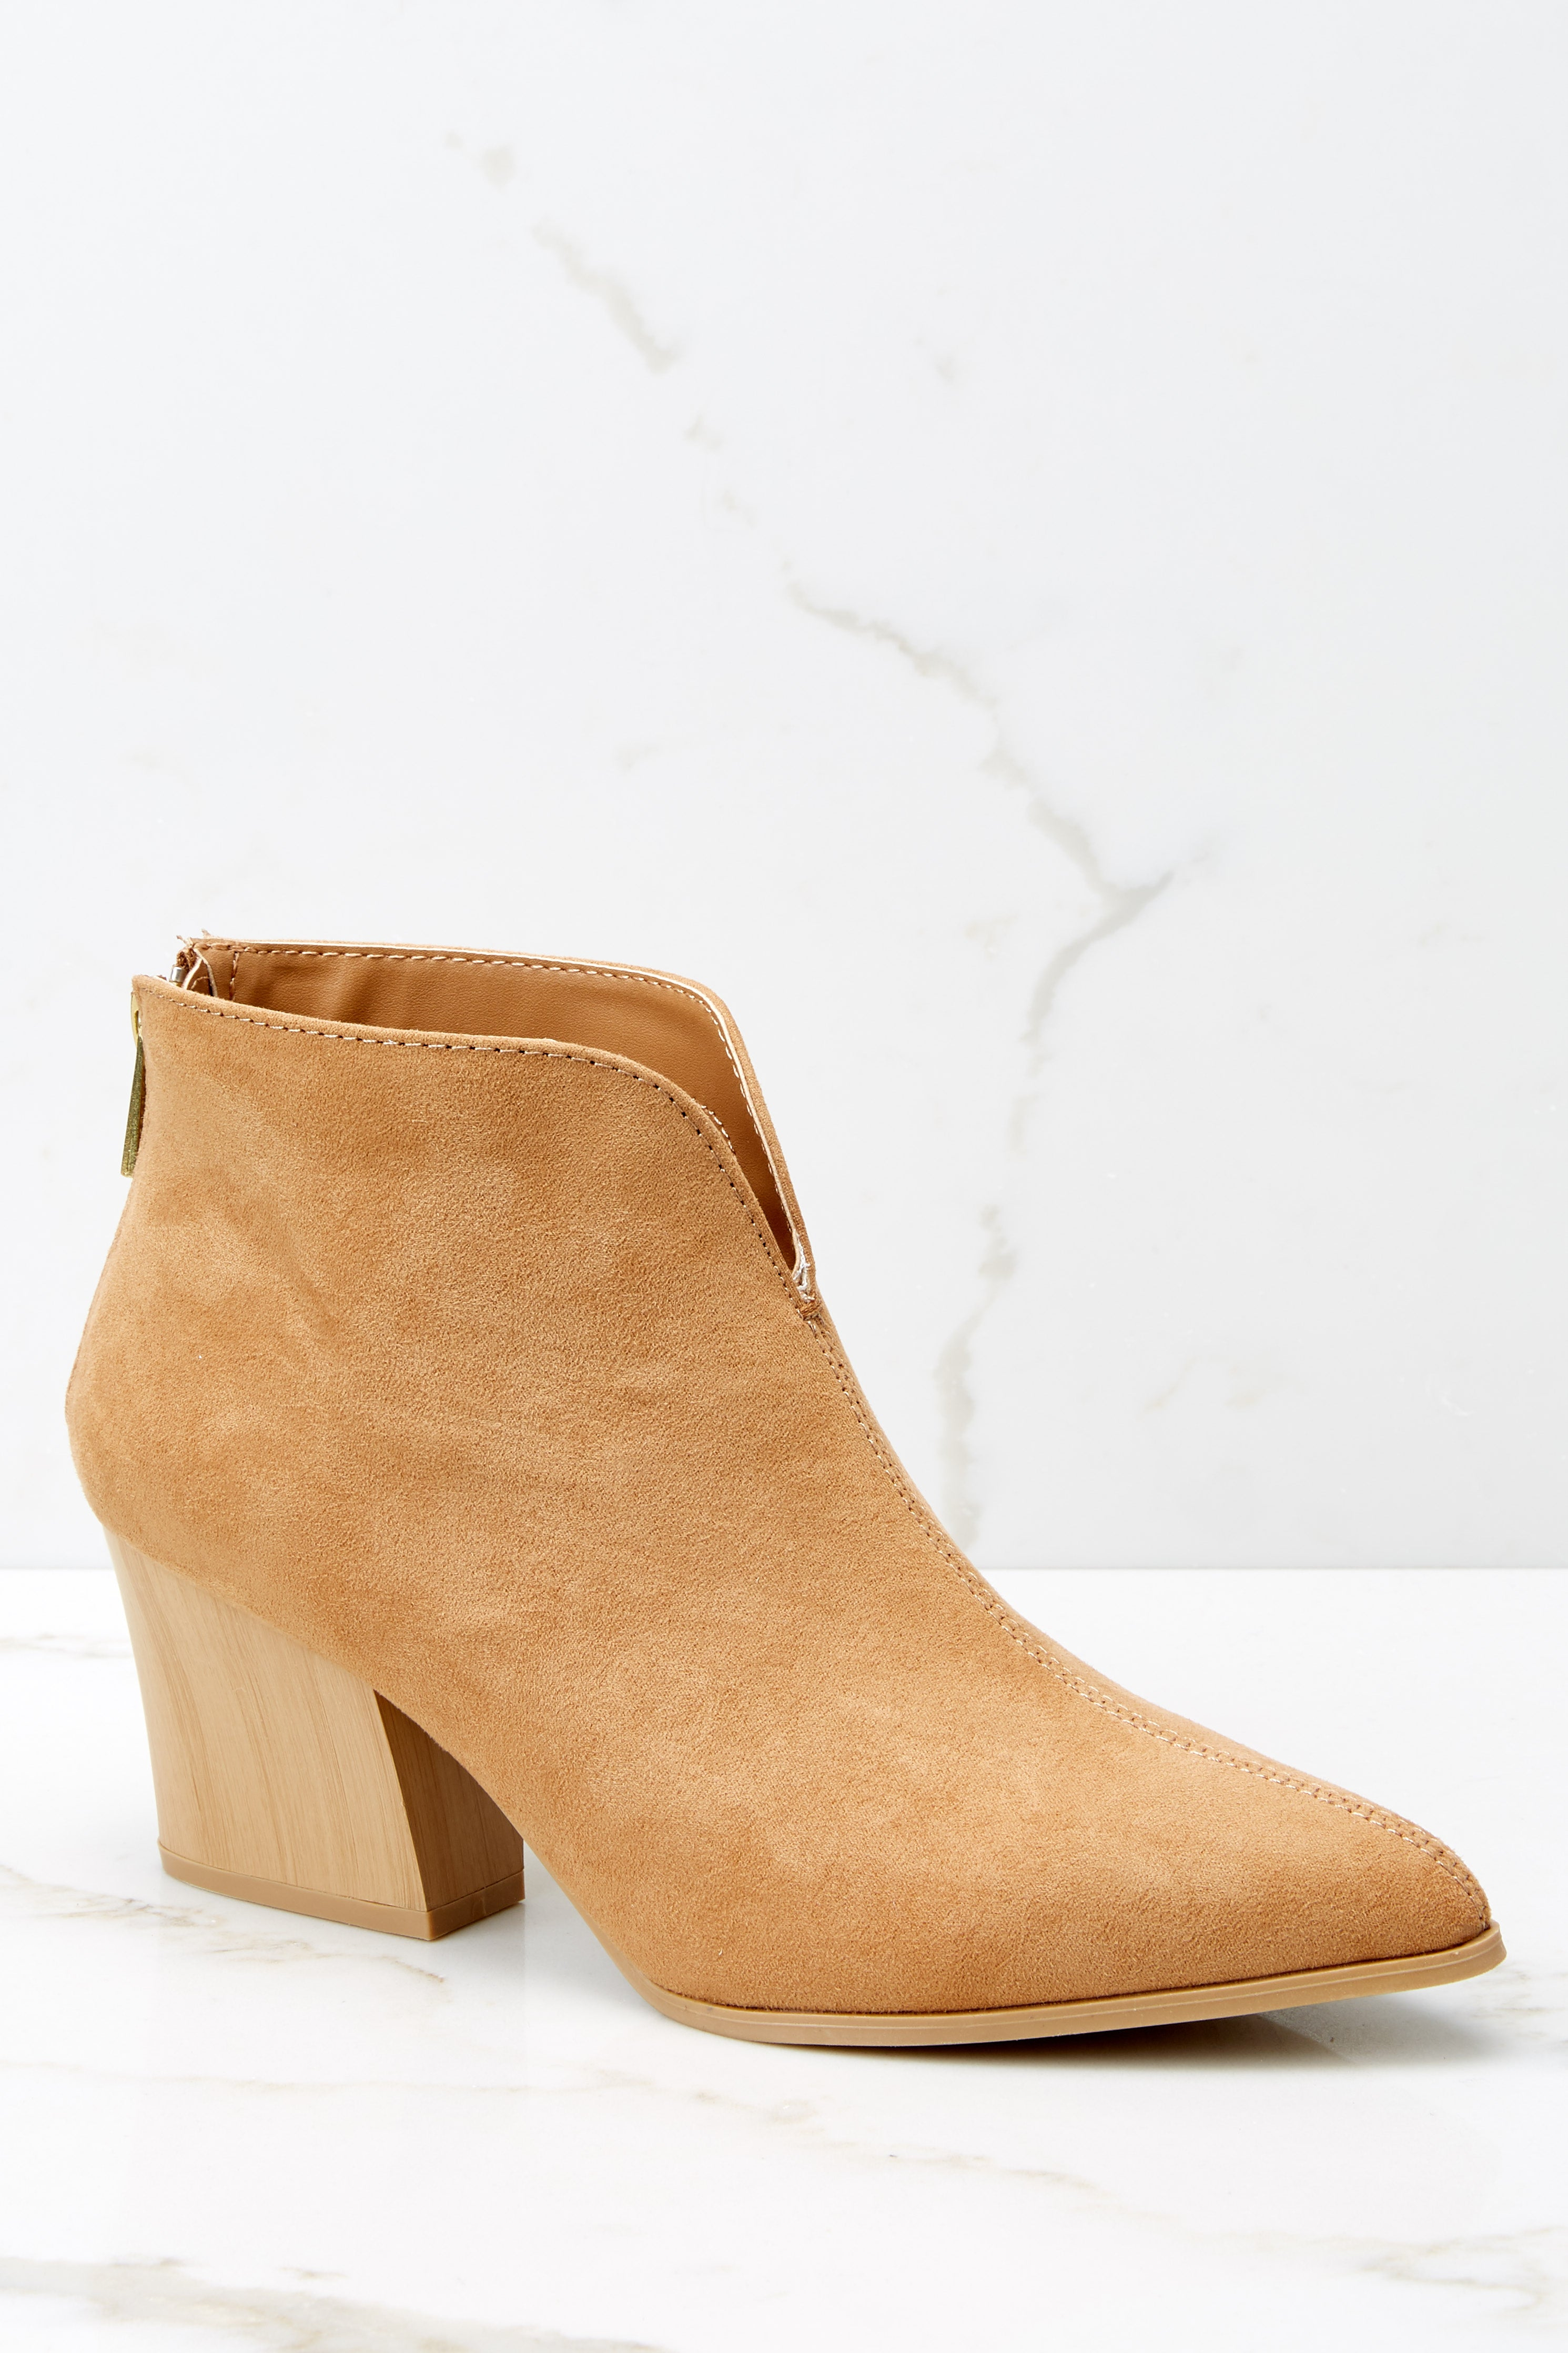 5 Photo Finish Tan Ankle Booties at reddress.com